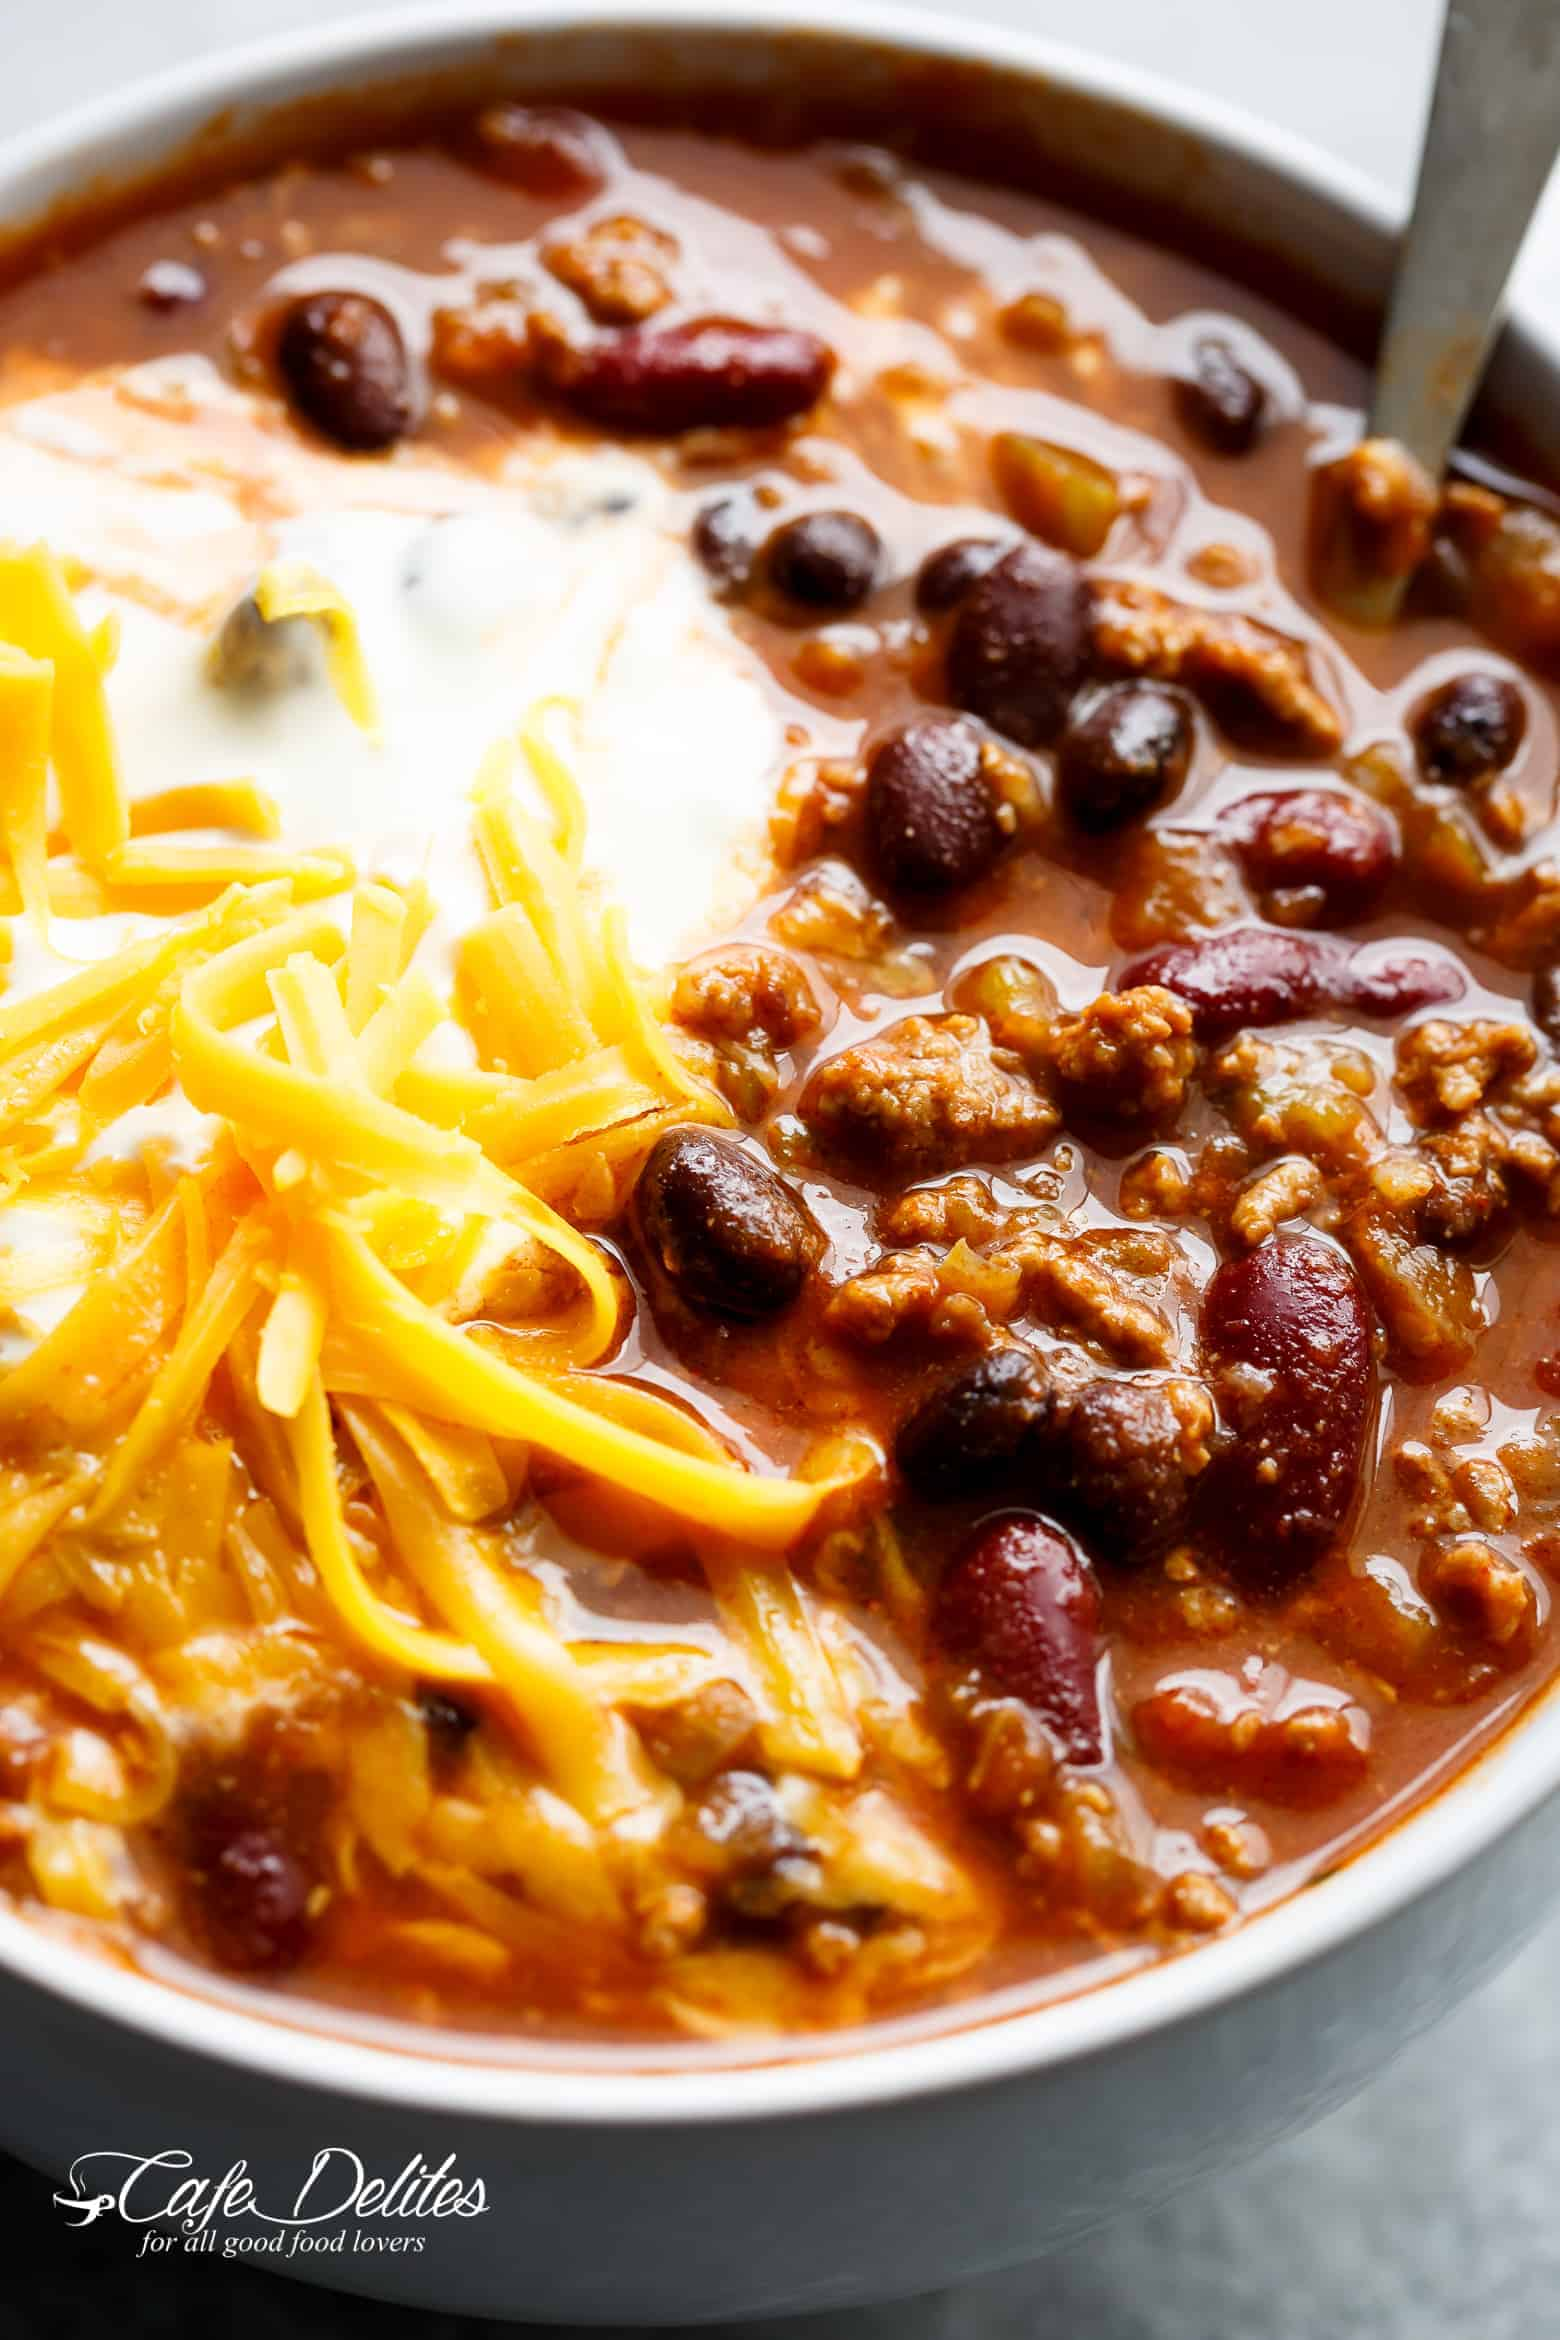 Beef Chili Recipe Cafe Delites